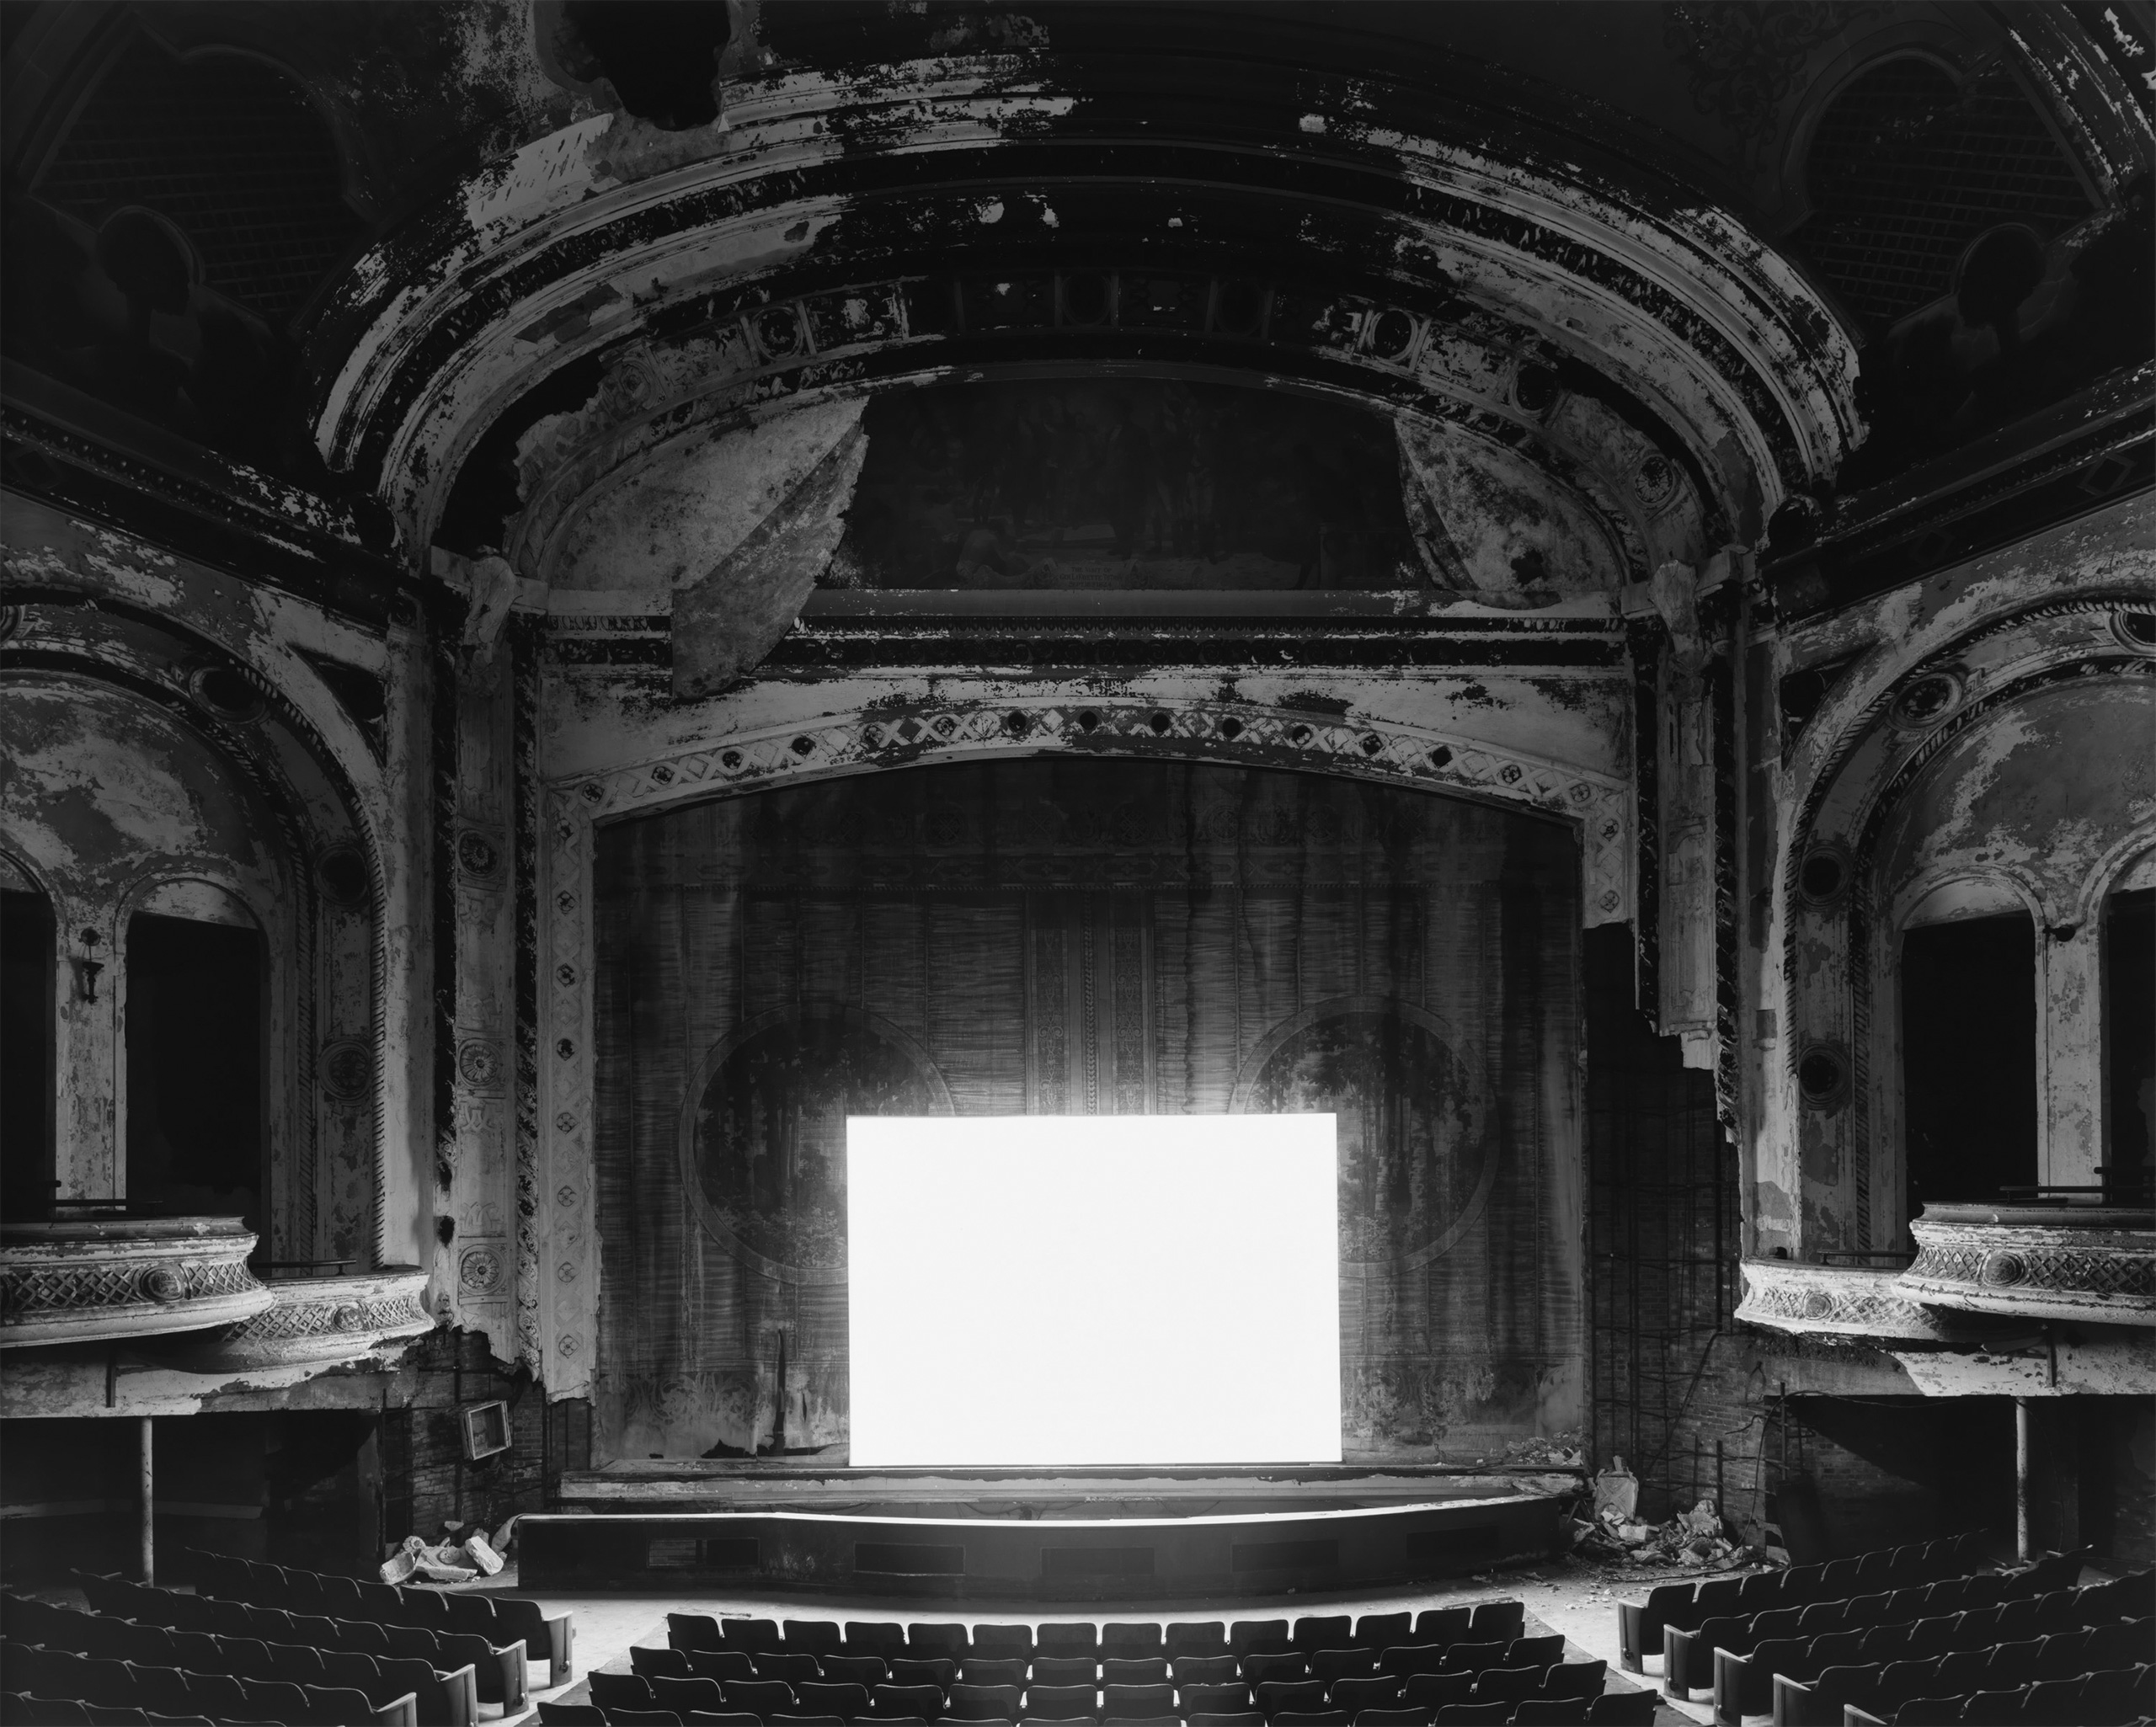 Proctor's Theater, Troy, 2015